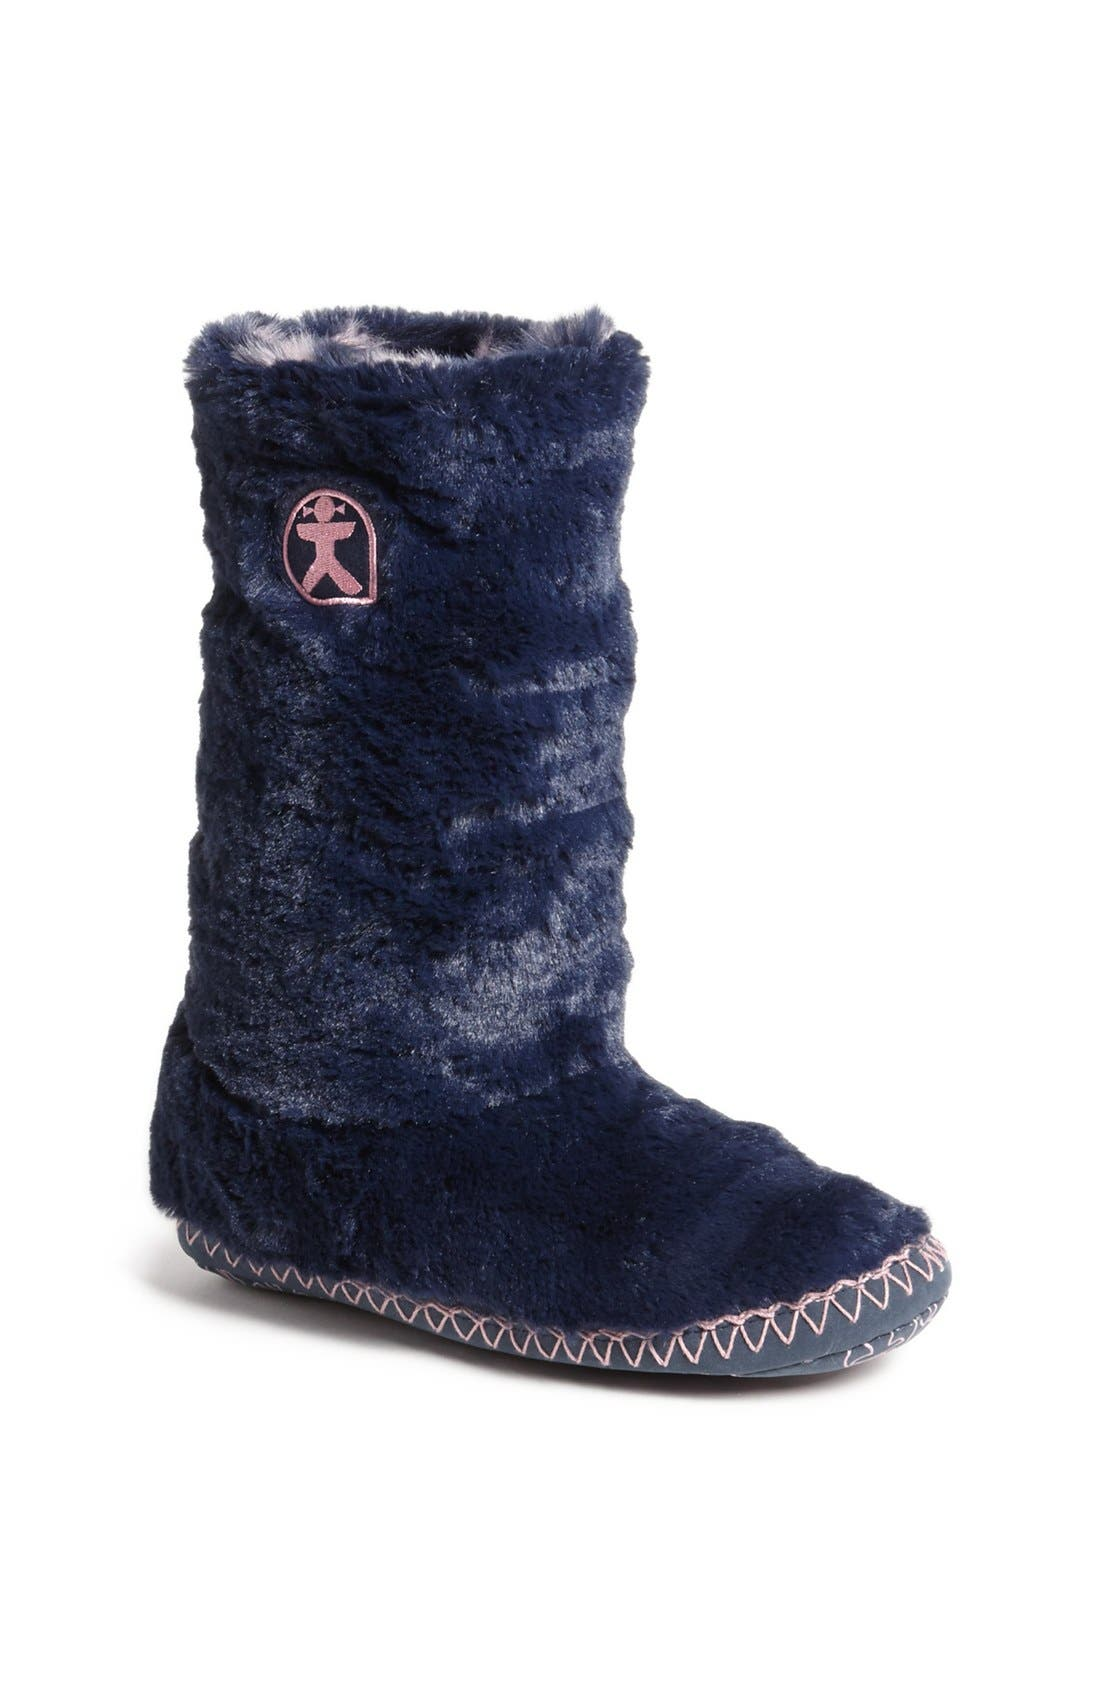 Alternate Image 1 Selected - Bedroom Athletics 'Sophia' Faux Fur Bootie Slipper